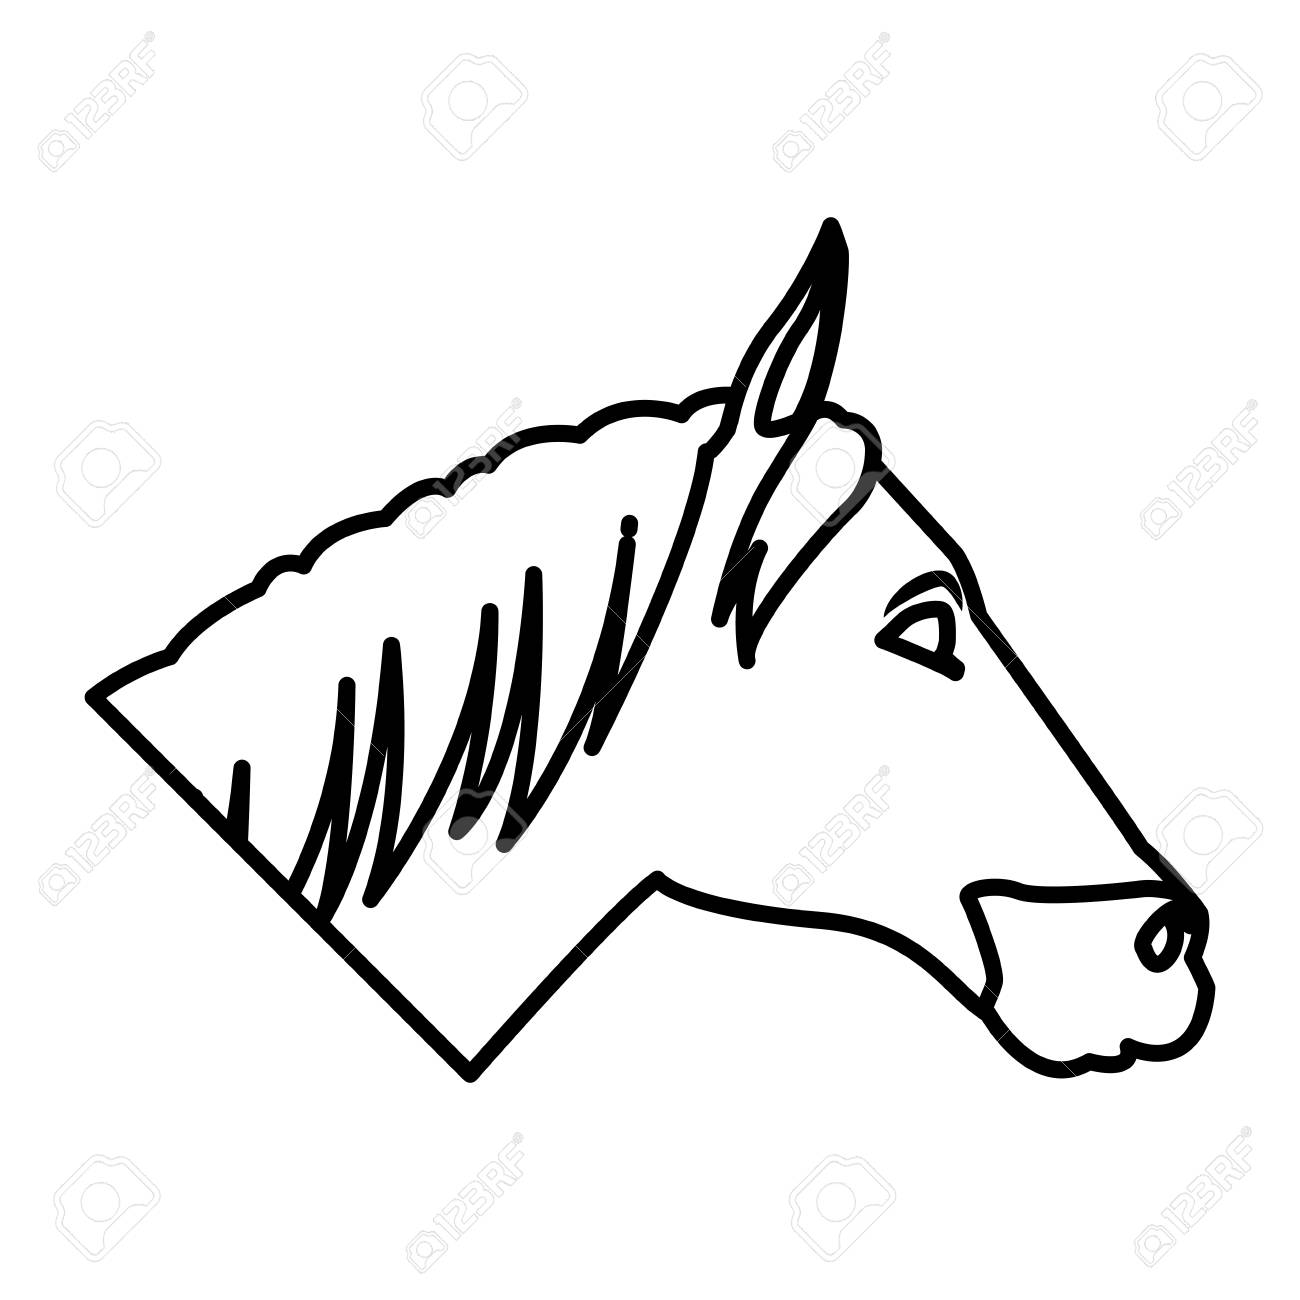 Horse Head Cartoon Icon Vector Illustration Graphic Design Royalty Free Cliparts Vectors And Stock Illustration Image 94319928